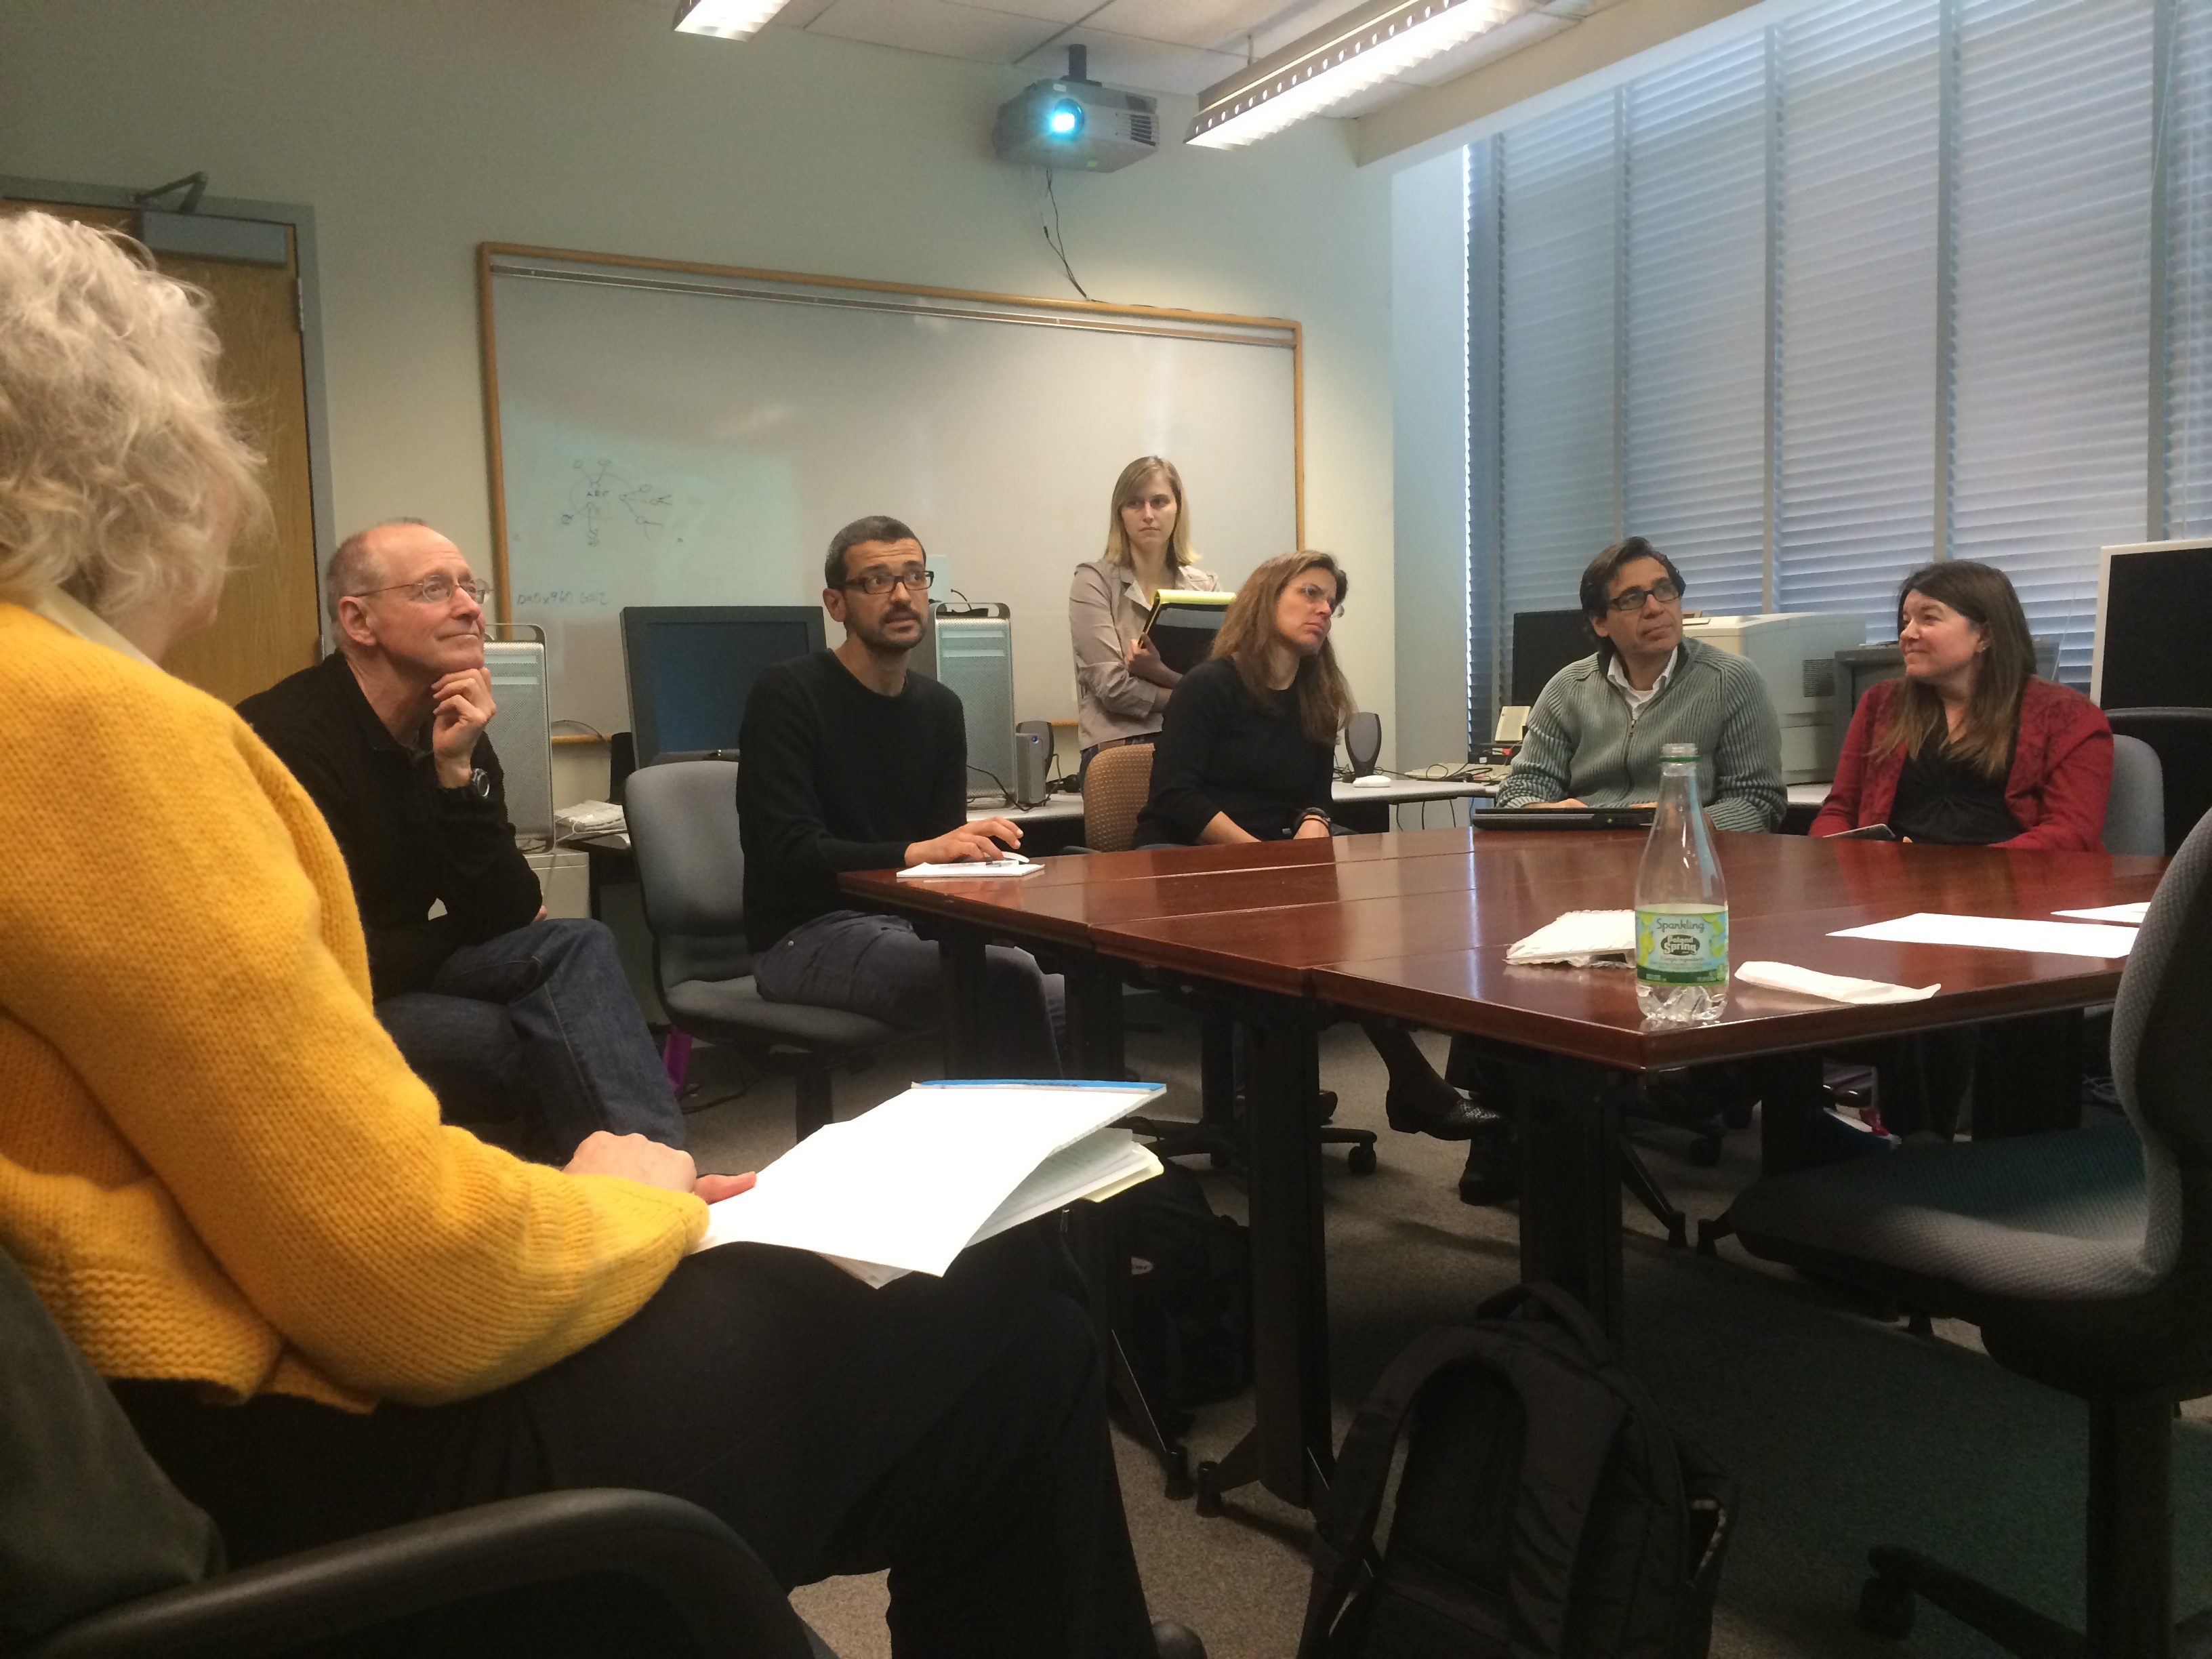 Prof. Roberto Rey Agudo discusses with his colleagues how he used Annotation Studio in his Spanish III course at MIT.